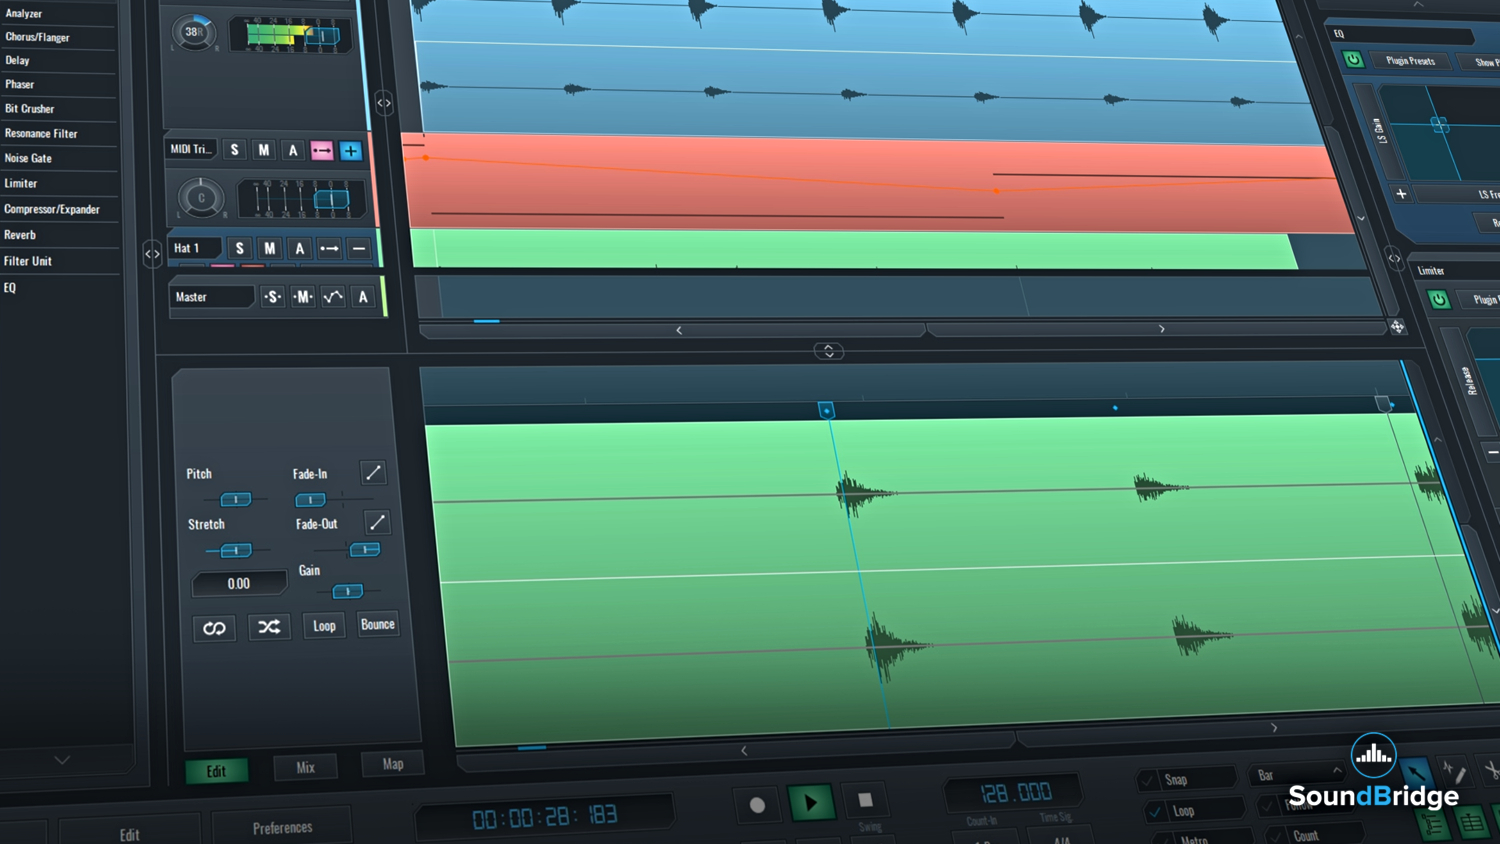 SoundBridge Widgets: Edit Windows – Part 1